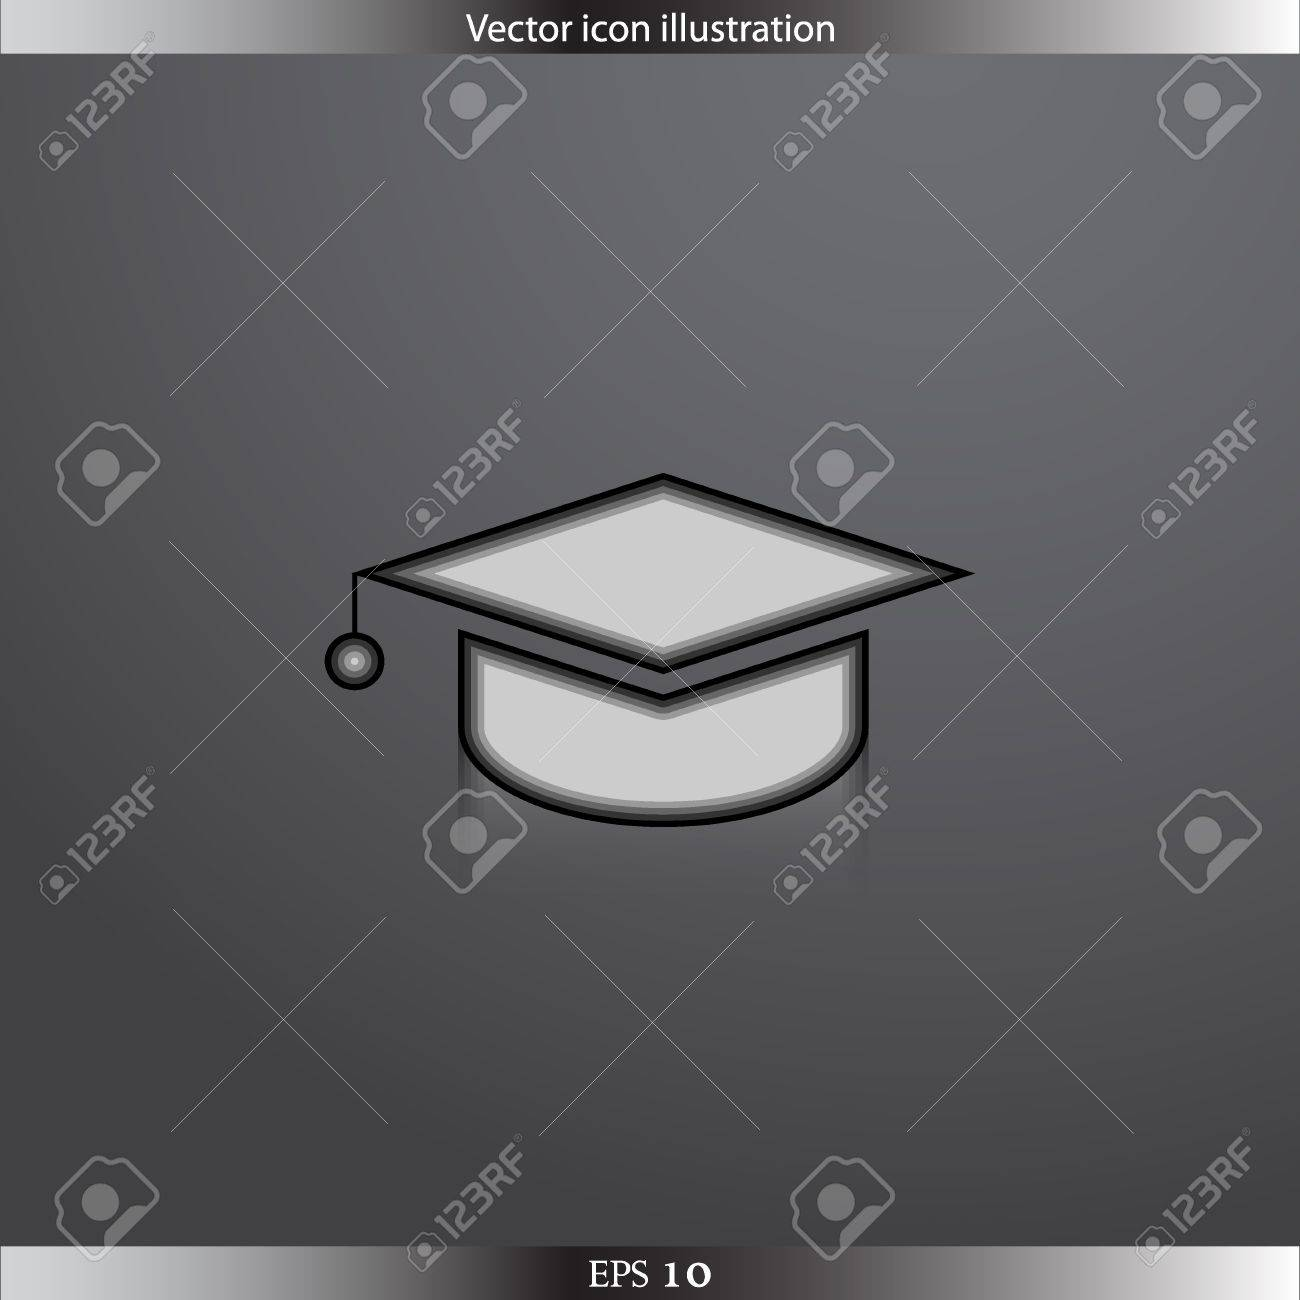 Vector Academic Cap Web Icon Royalty Free Cliparts 3c6a3aef710